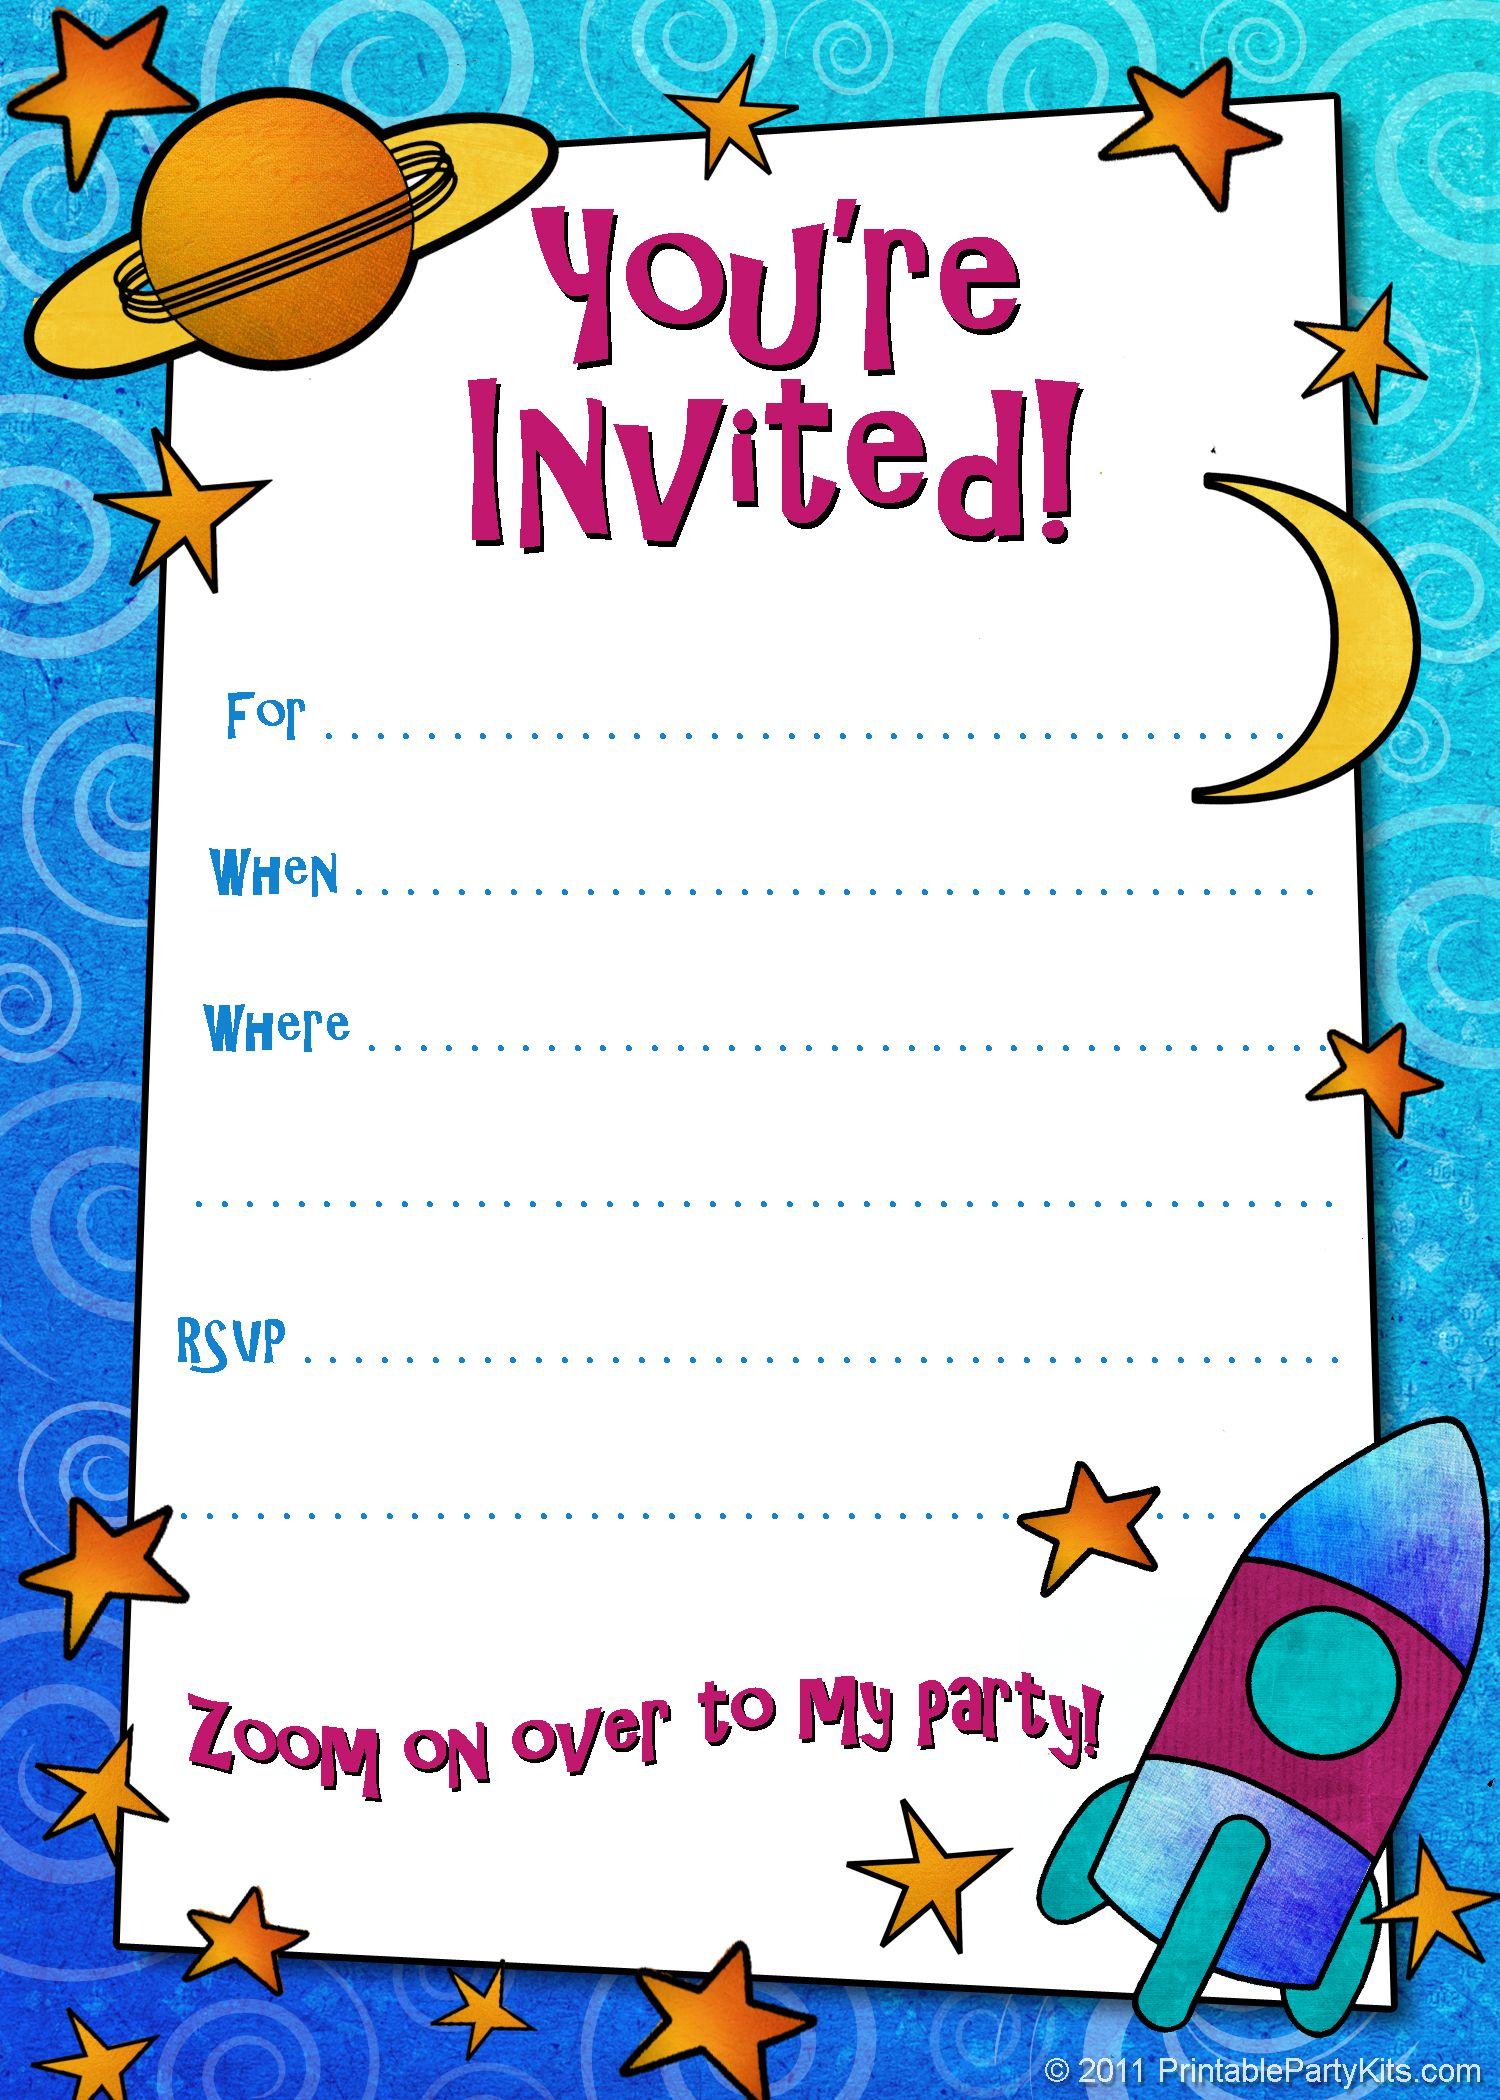 Free printable boys birthday party invitations boy birthday free printable boys birthday party invitations filmwisefo Image collections